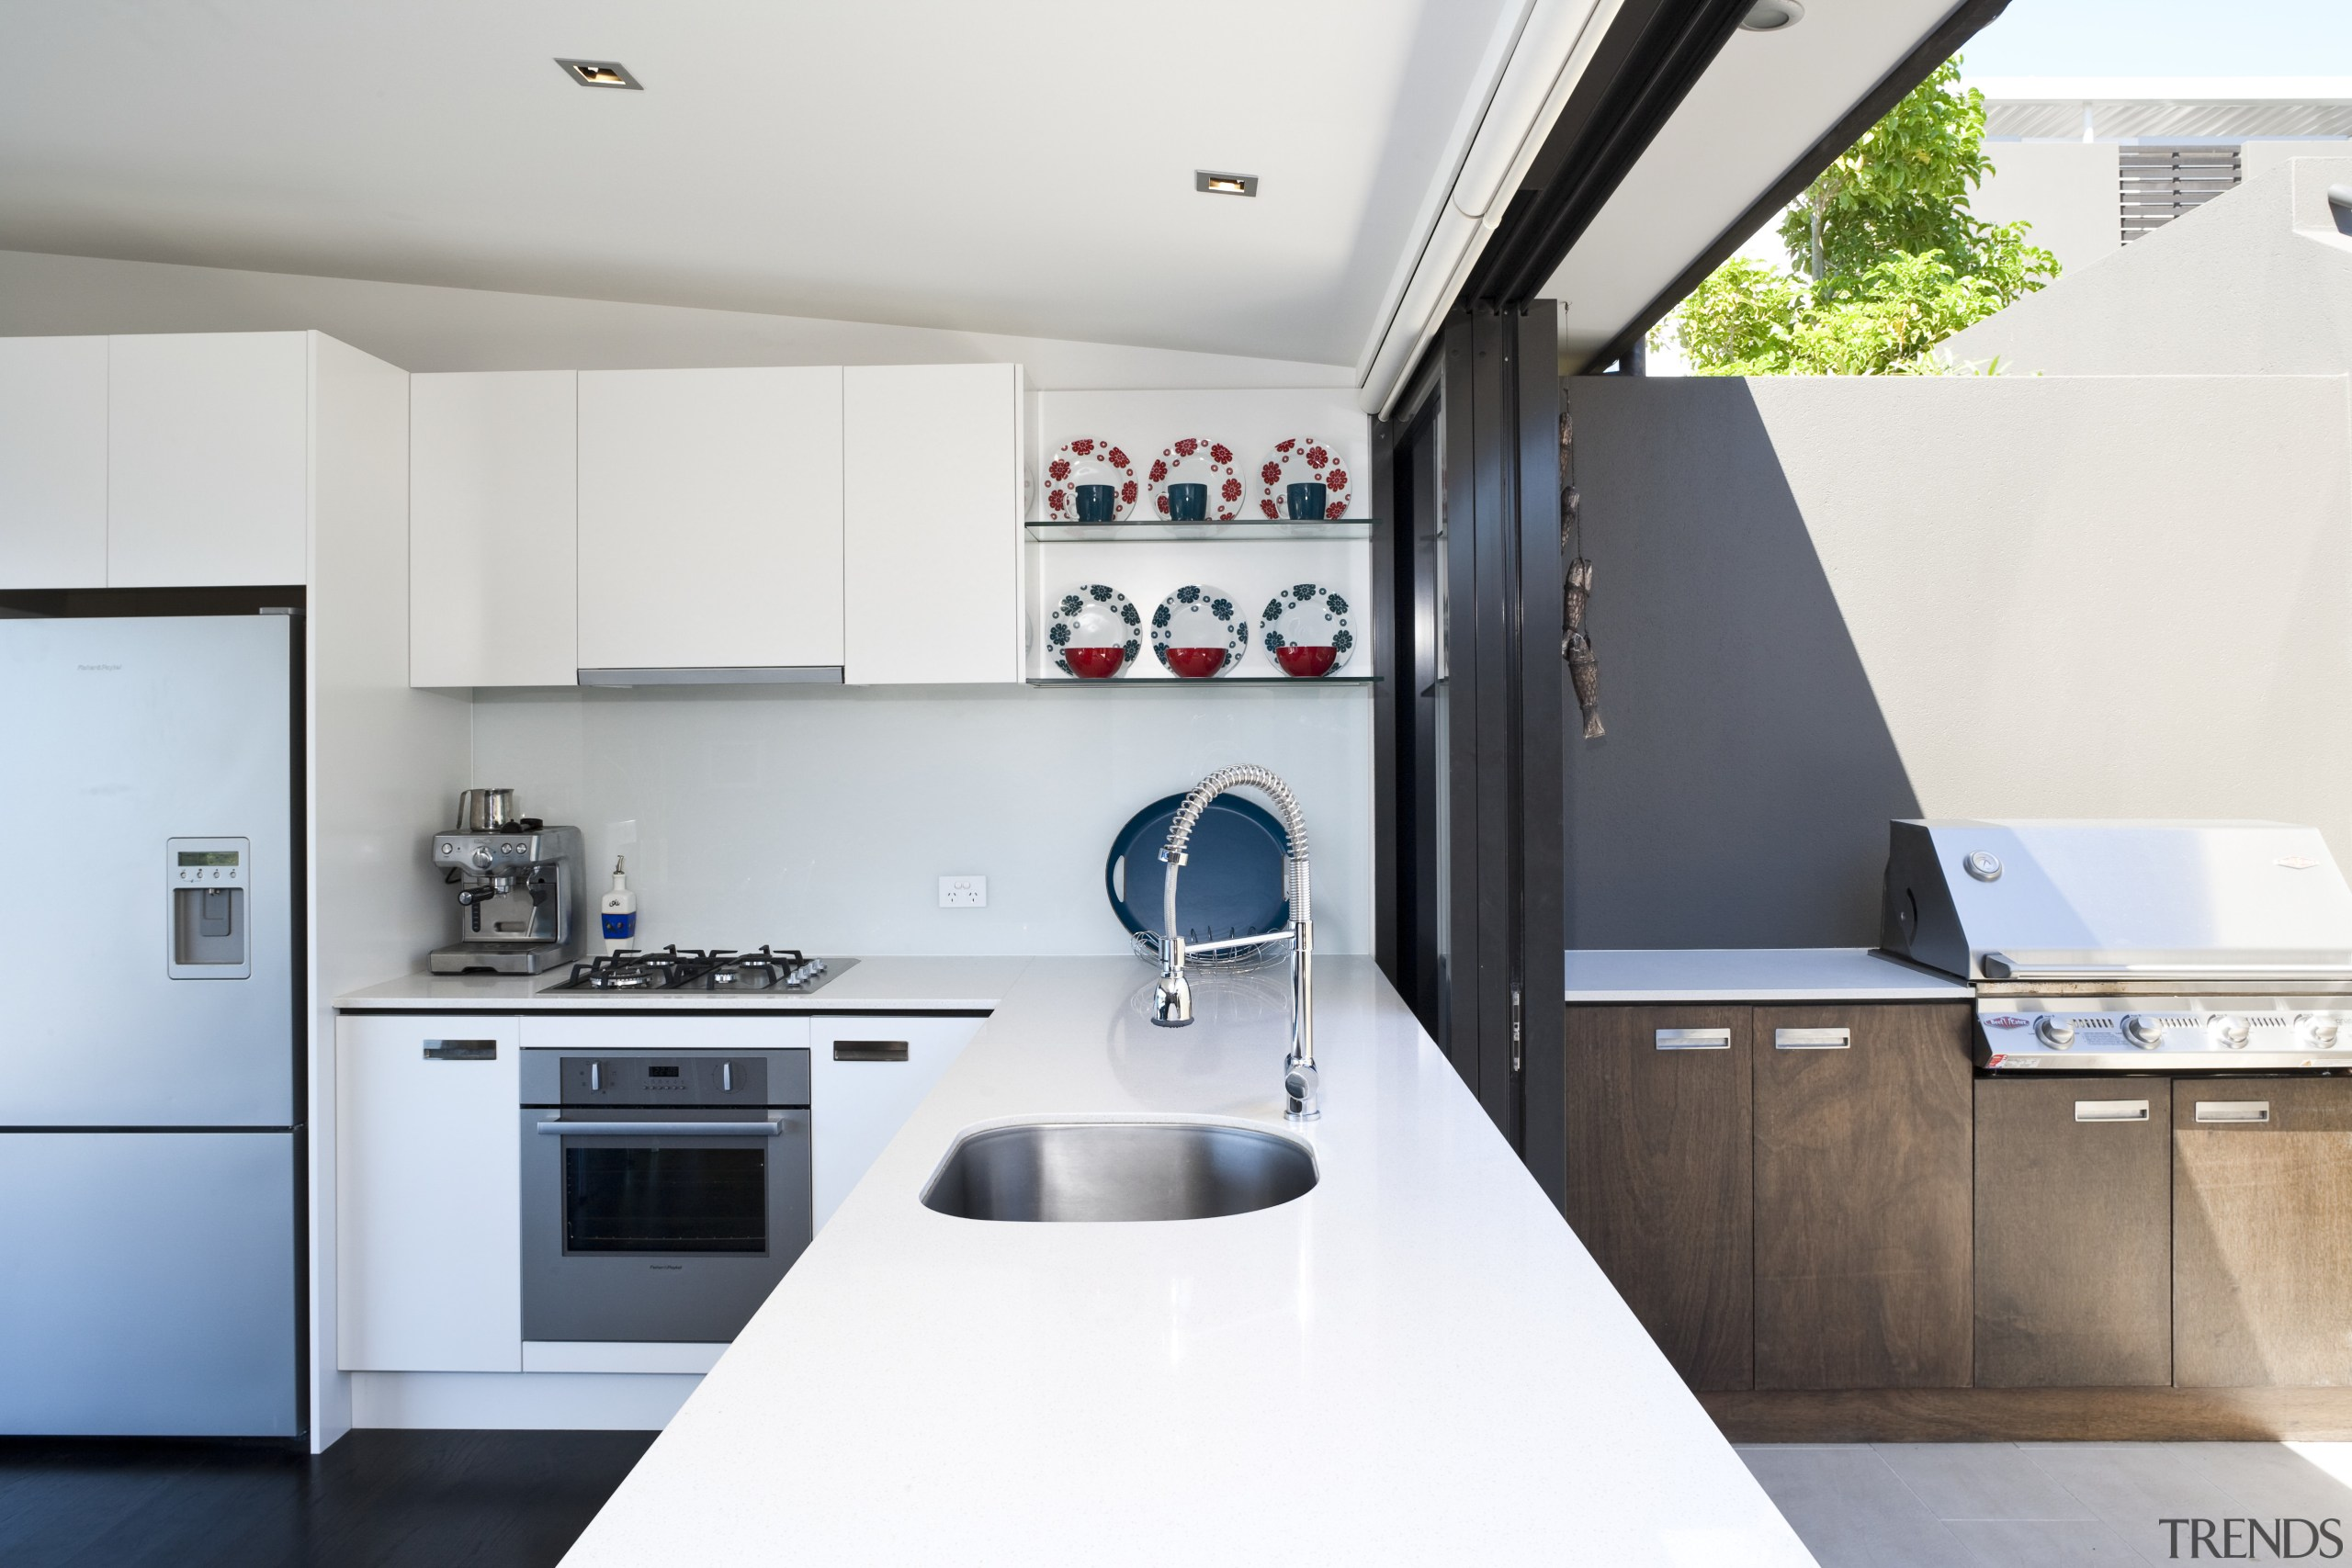 View of kitchen featuring outdoor serving area, white countertop, interior design, kitchen, product design, white